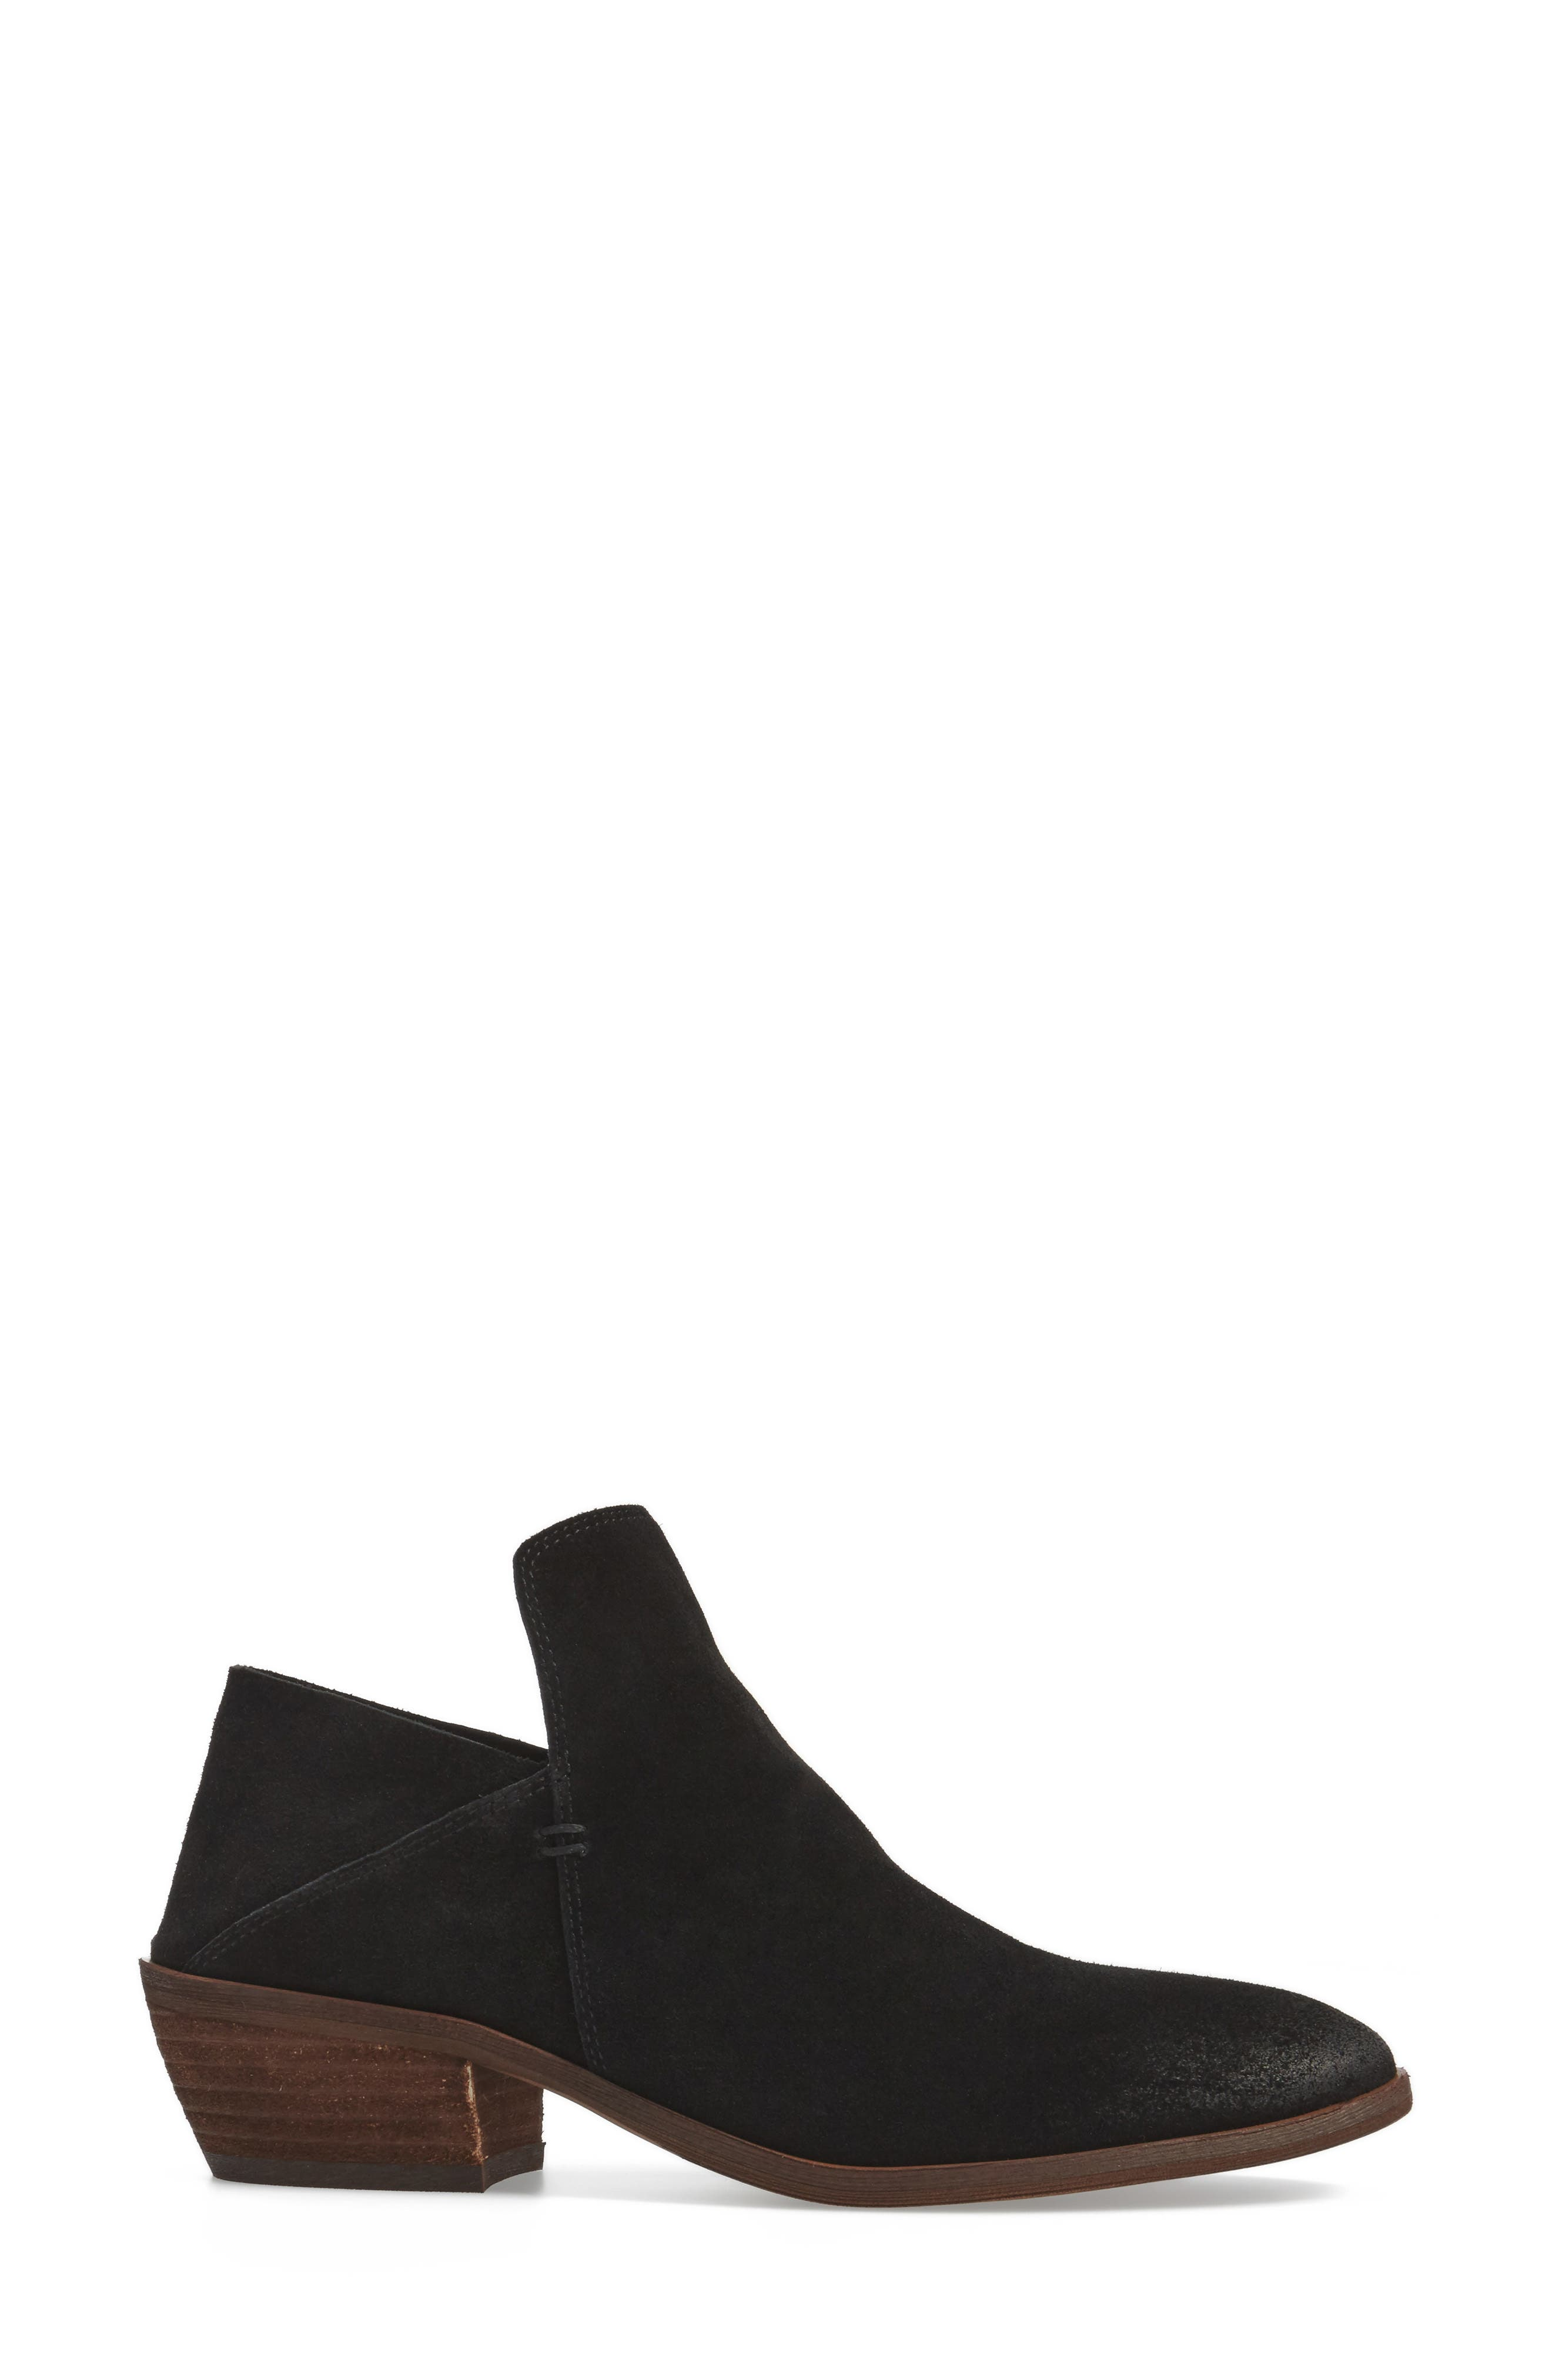 Prentice Convertible Ankle Boot,                             Alternate thumbnail 5, color,